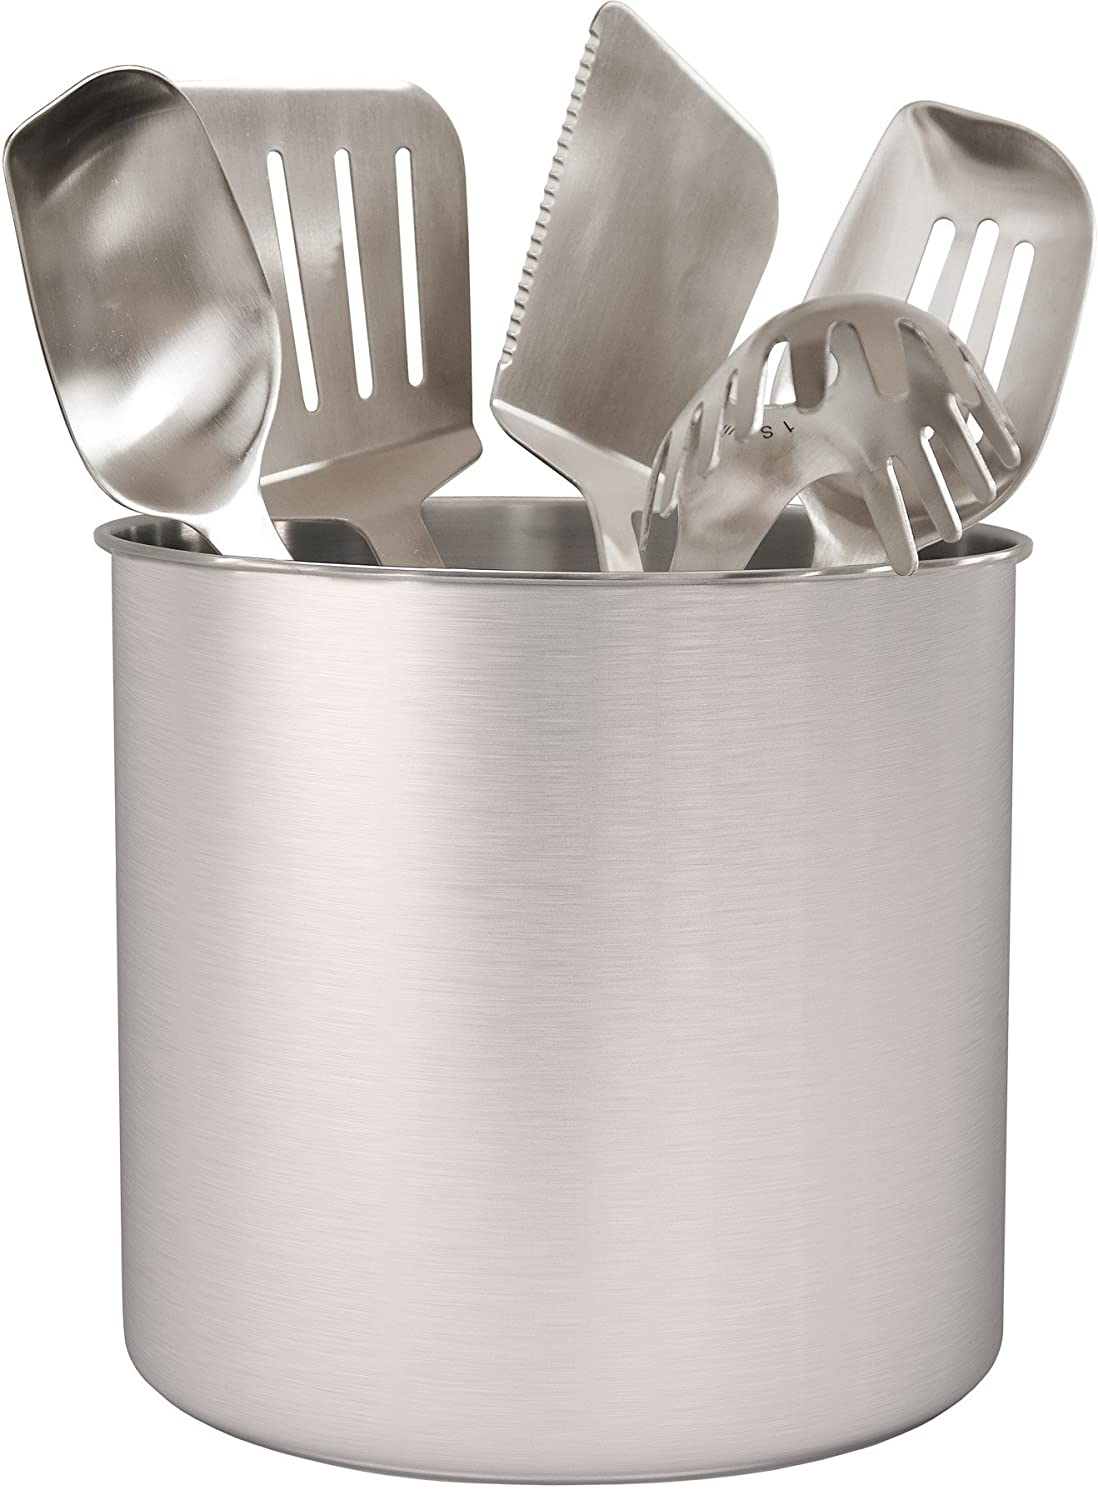 Estilo EST0286 Stainless steel Utensil Holder Jumbo, 7 x 7 7 x 7